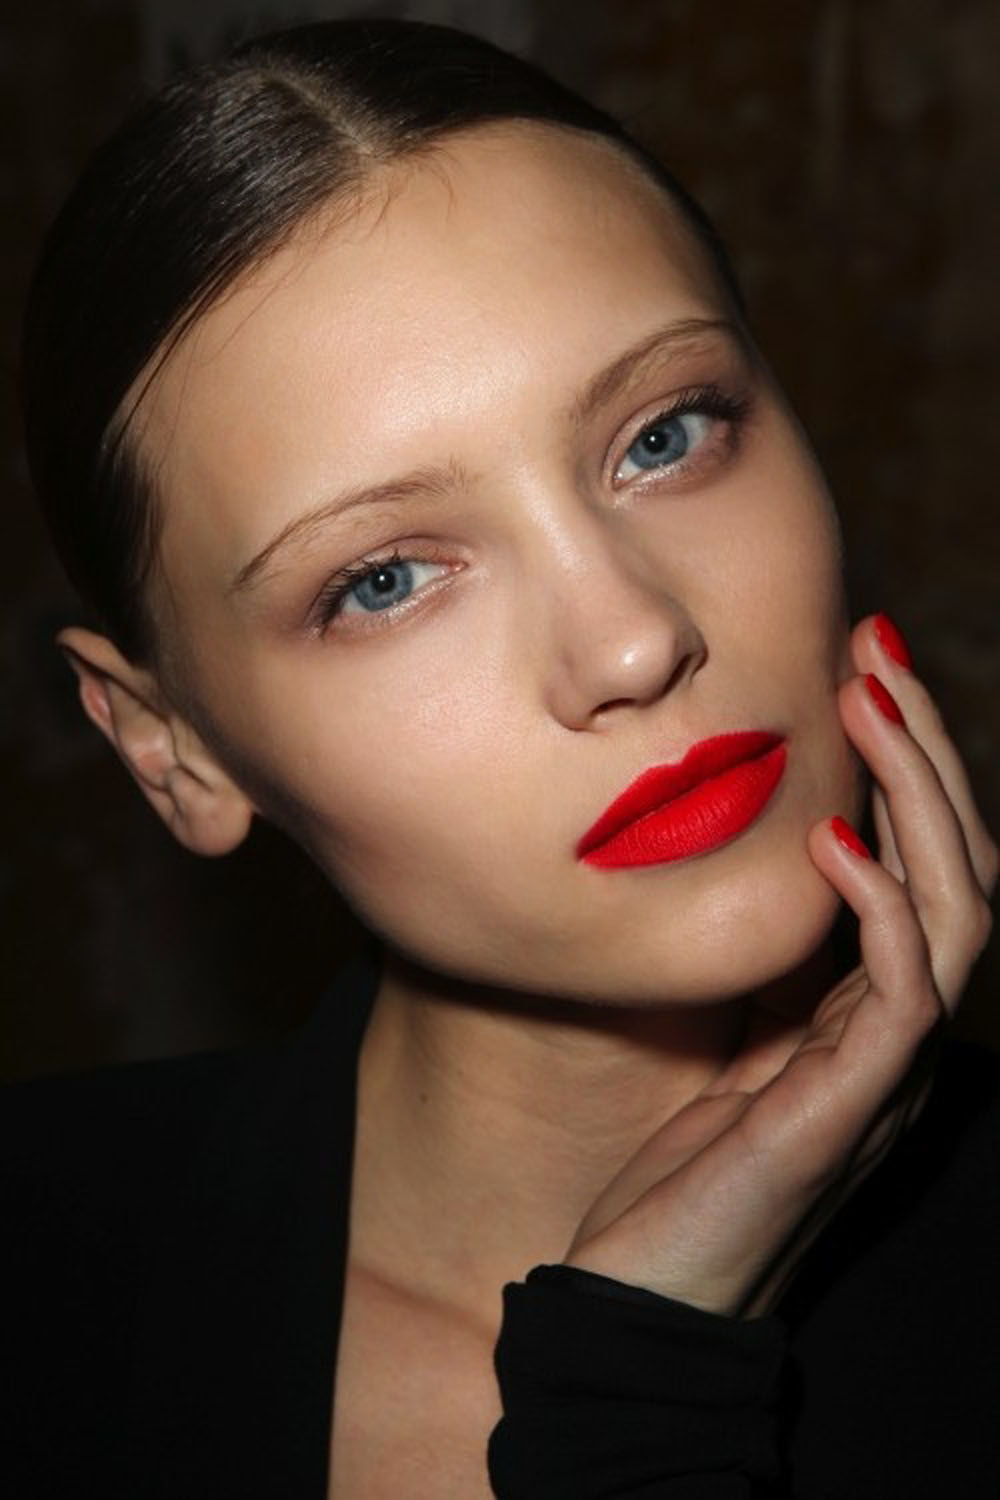 Red lipstick on small lips